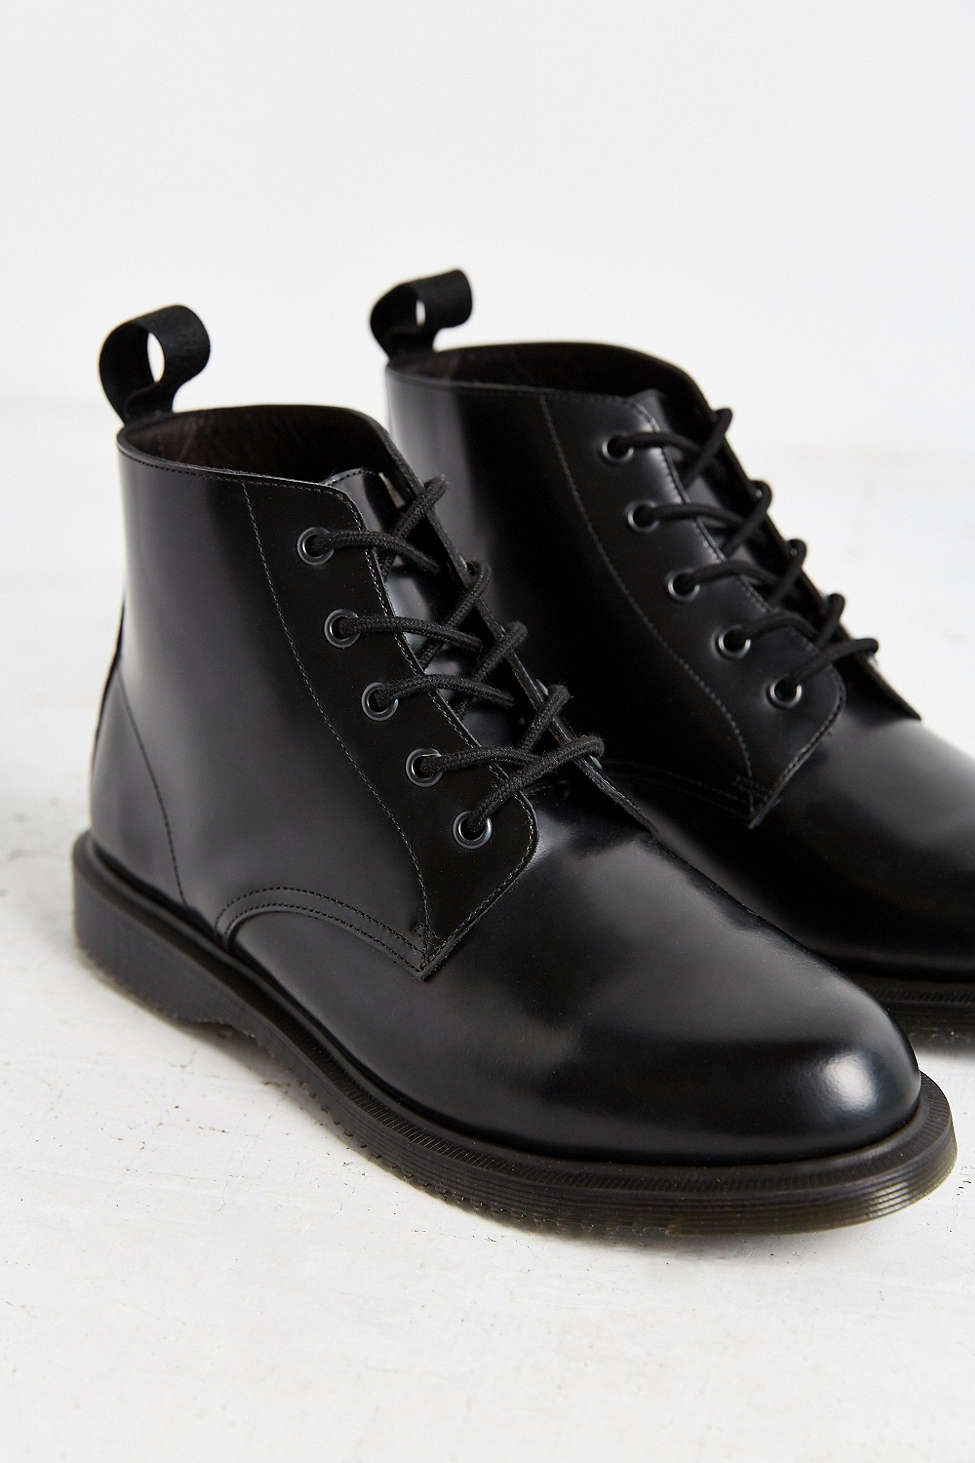 Dr. Martens Emmeline 5-Eye Boot - Urban Outfitters | Shoes ...